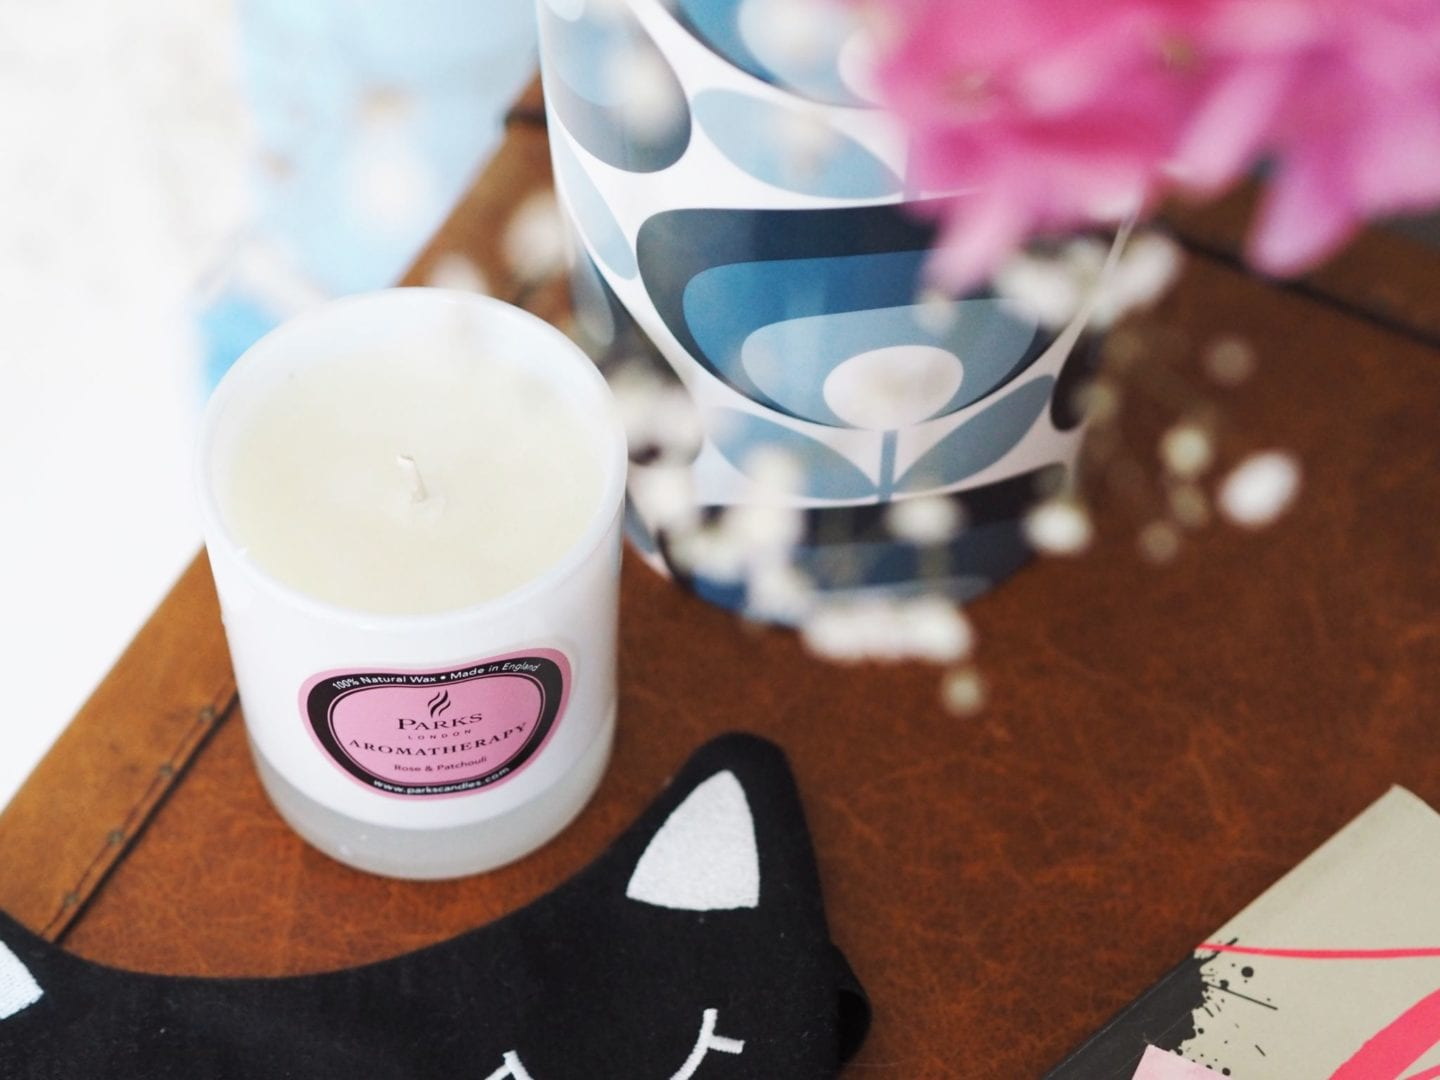 brandalley-bedroom-park-candle